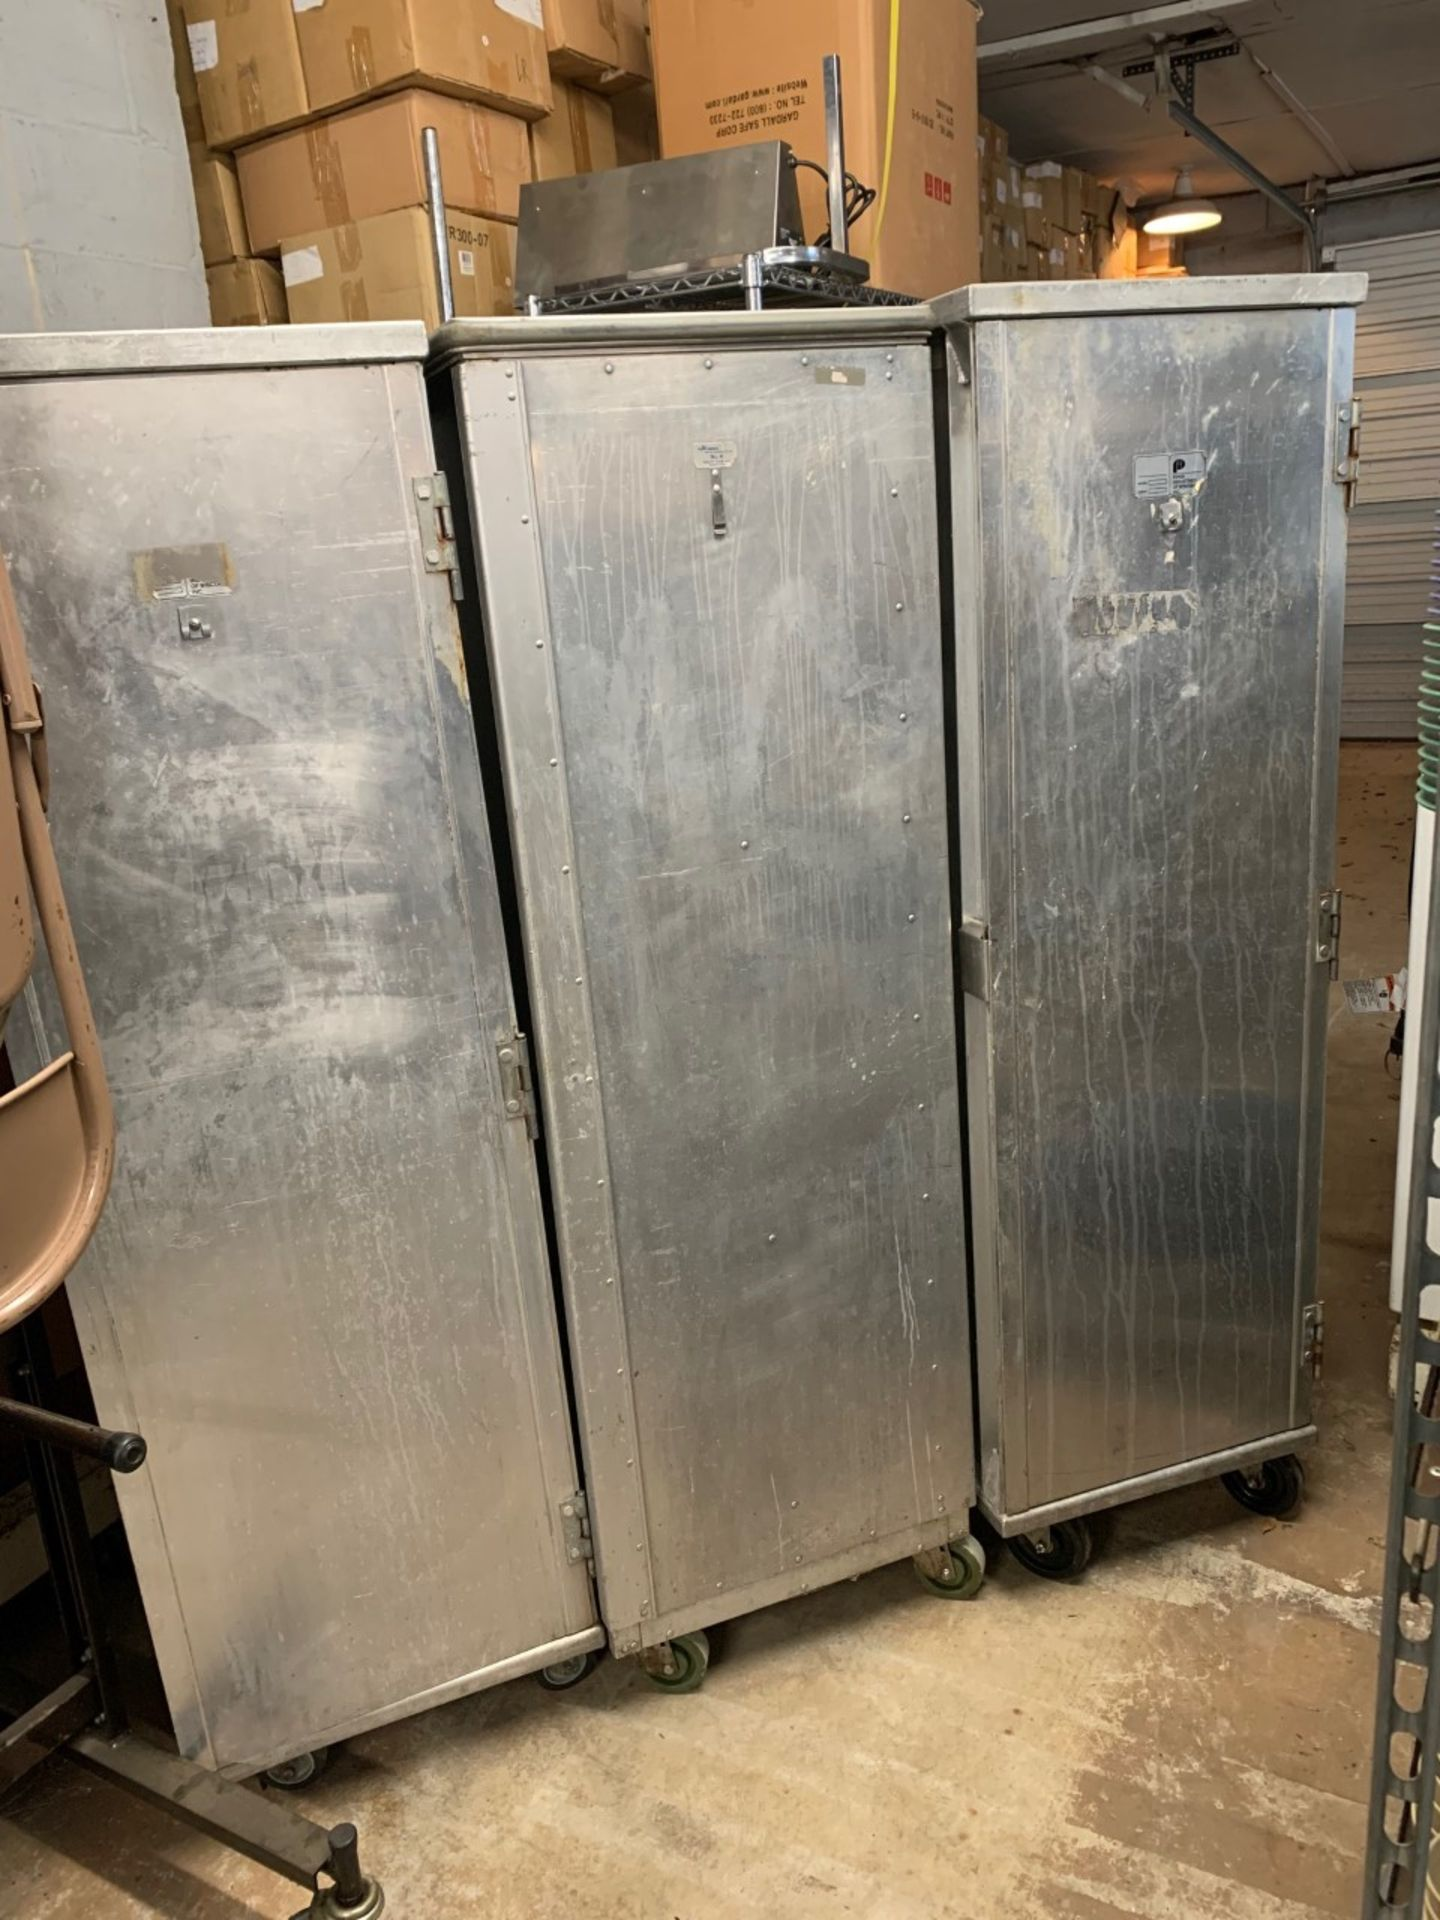 Lot 1456 - Aluminum Transport Cabinets (Not Heated)